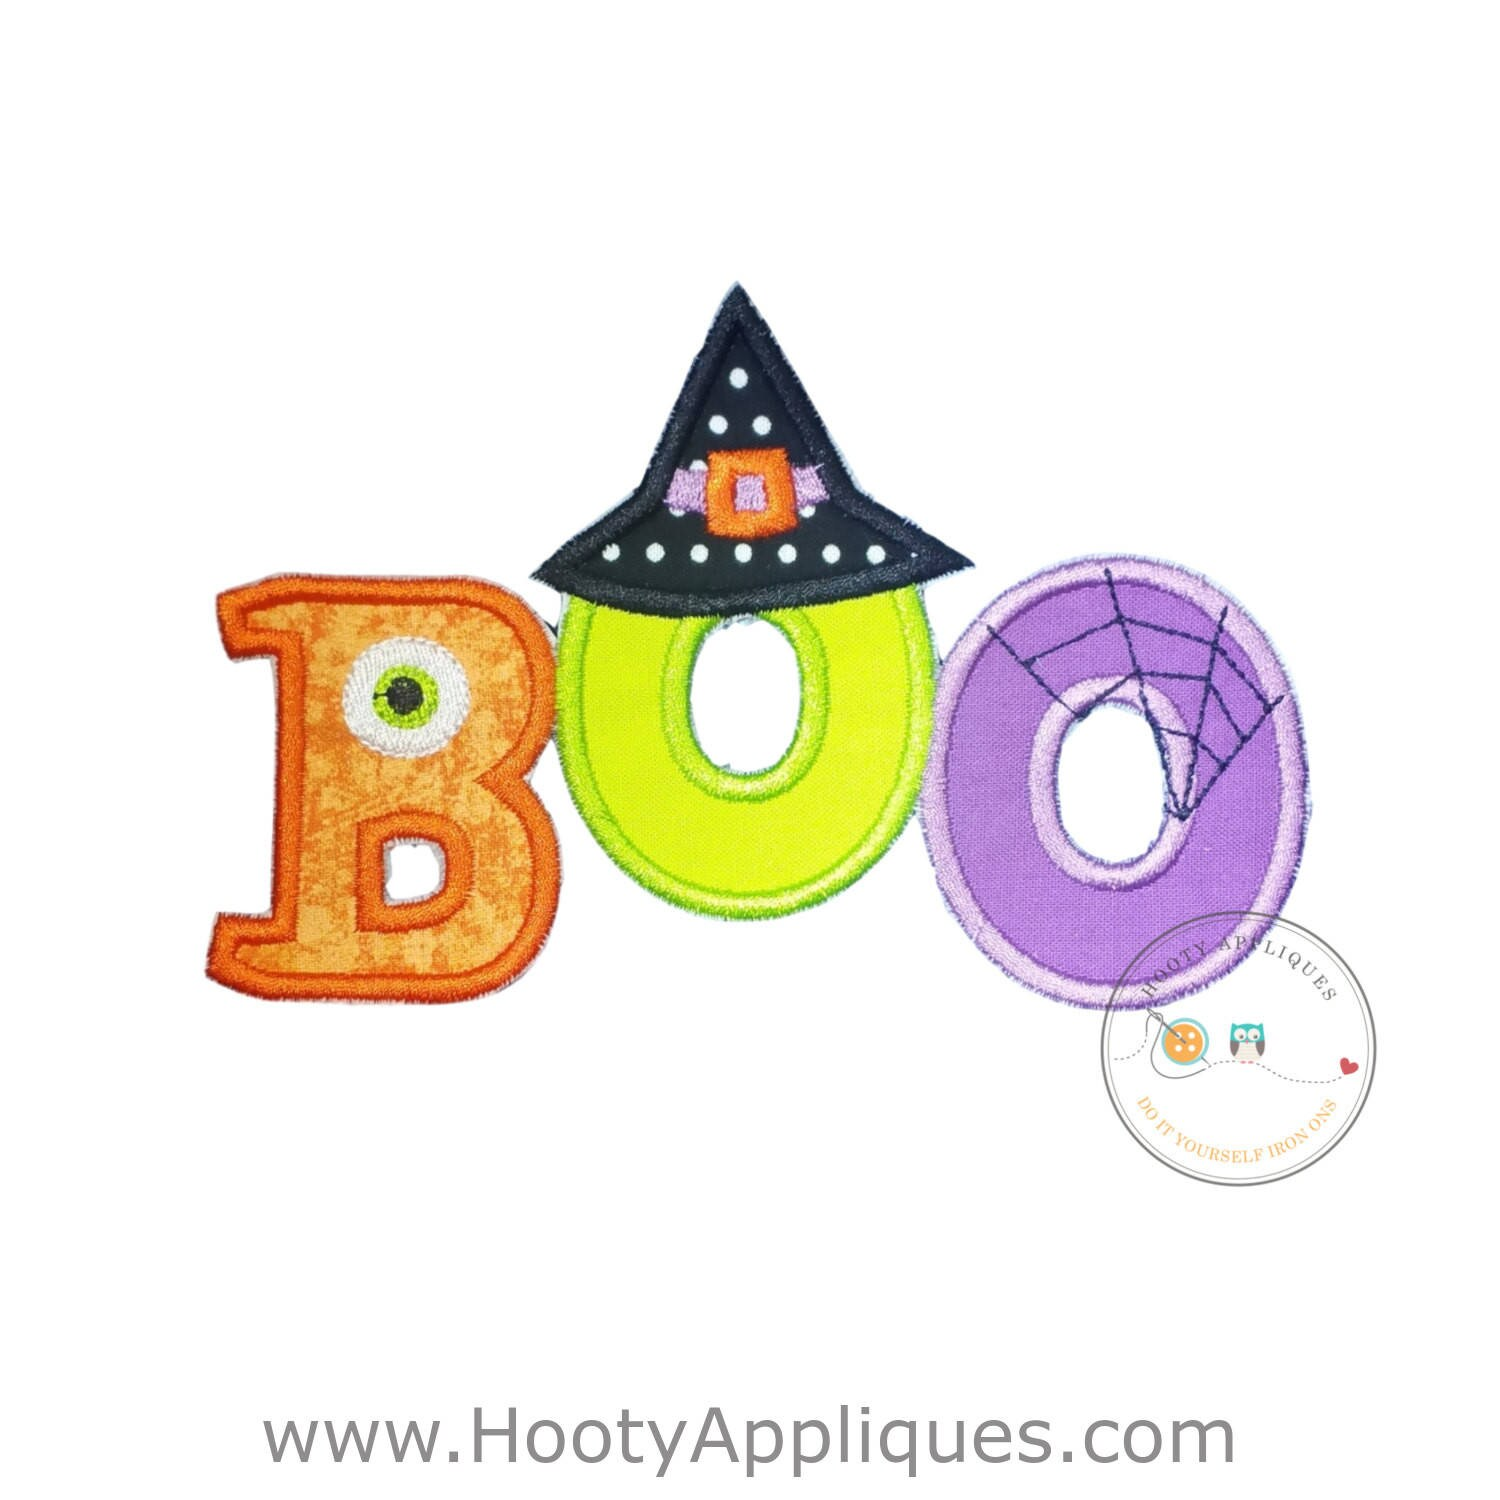 boo halloween text emoridered fabric iron on applique cute monster and witch letter no sew iron on halloween patch ready to ship pre made